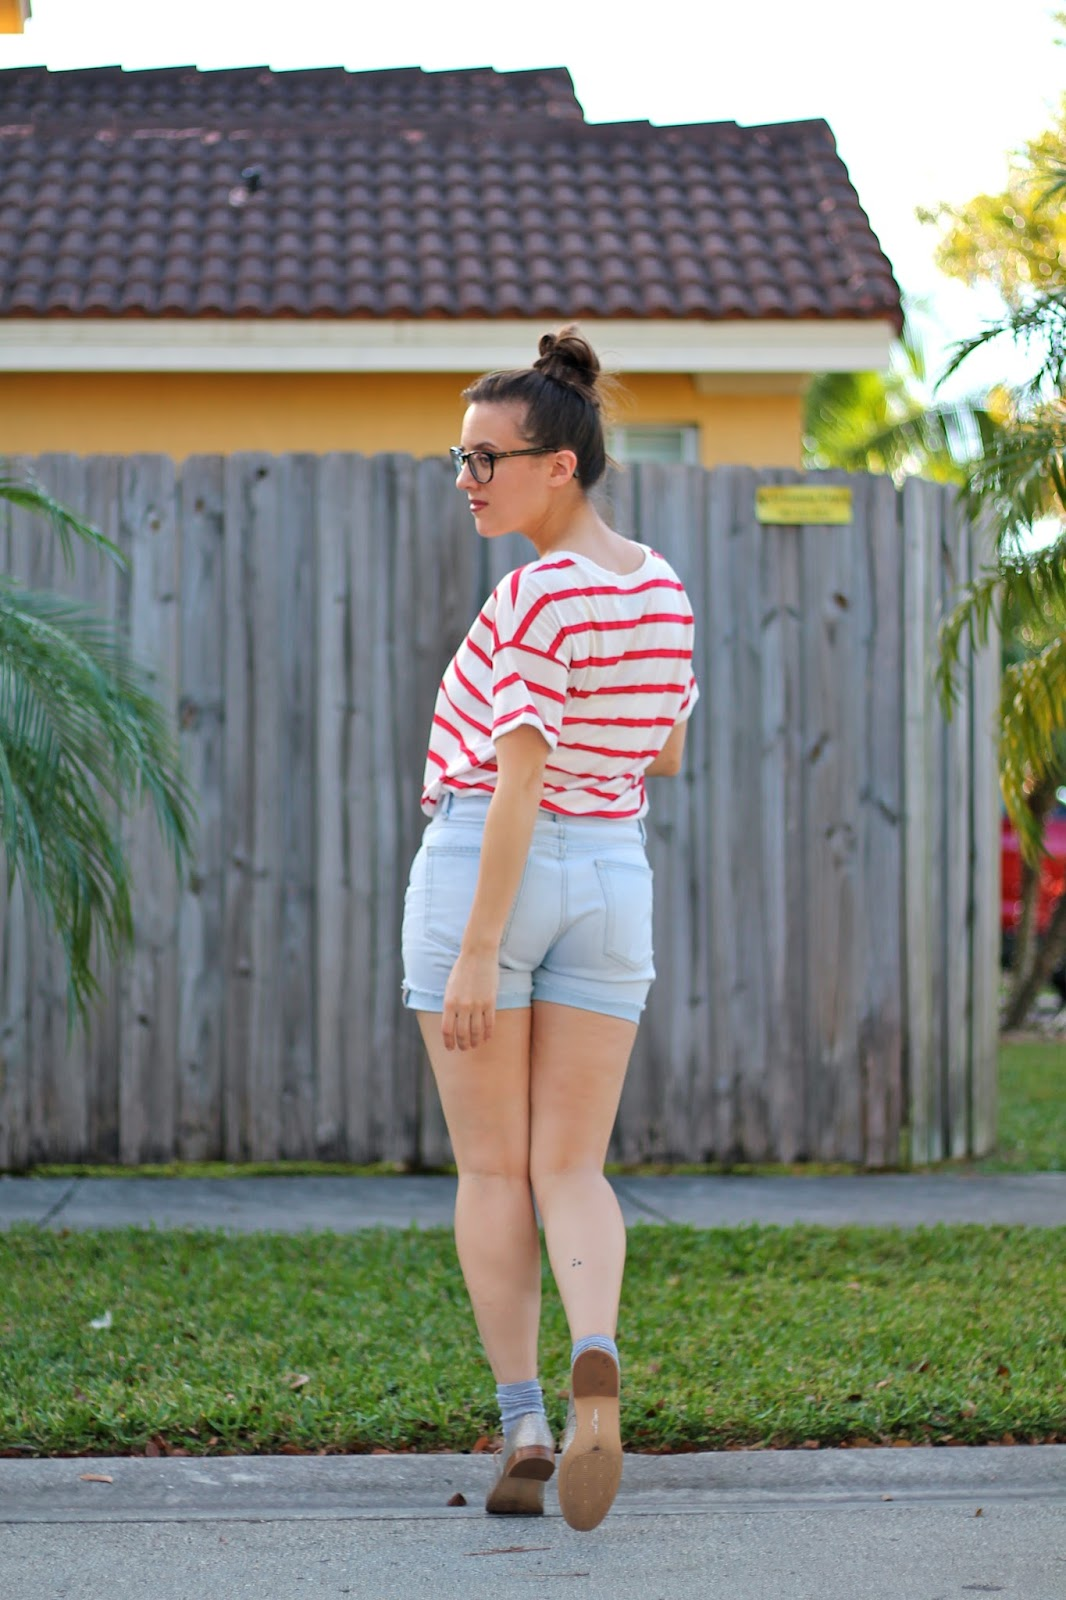 fashion blogger, miami fashion blogger, capsule wardrobe, capsule blogger, new york fashion blogger, fblogger, outfit ideas, look book, stylish outfits